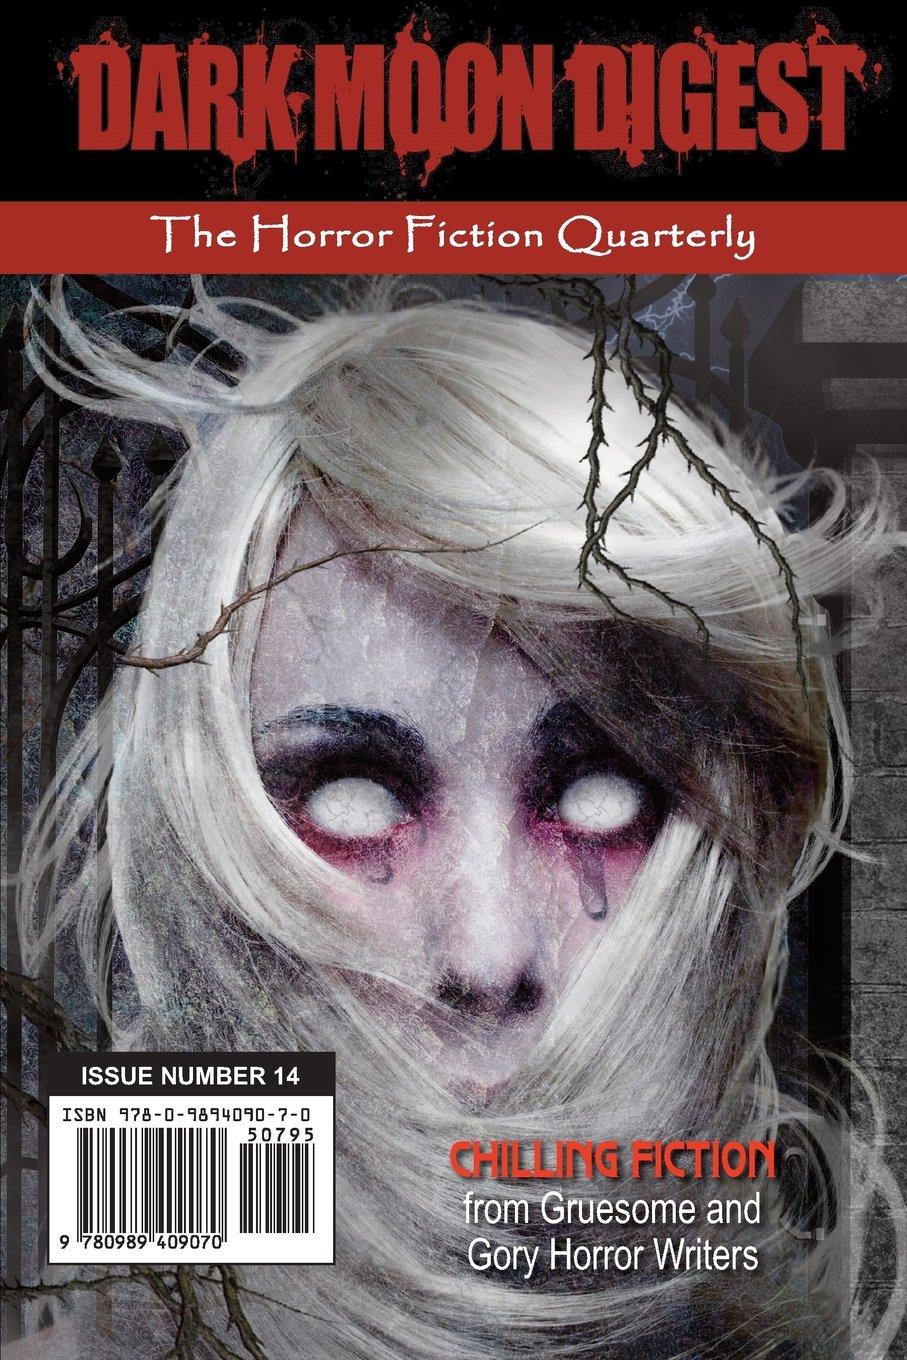 Dark Moon Digest - Issue #14: The Horror Fiction Quarterly PDF